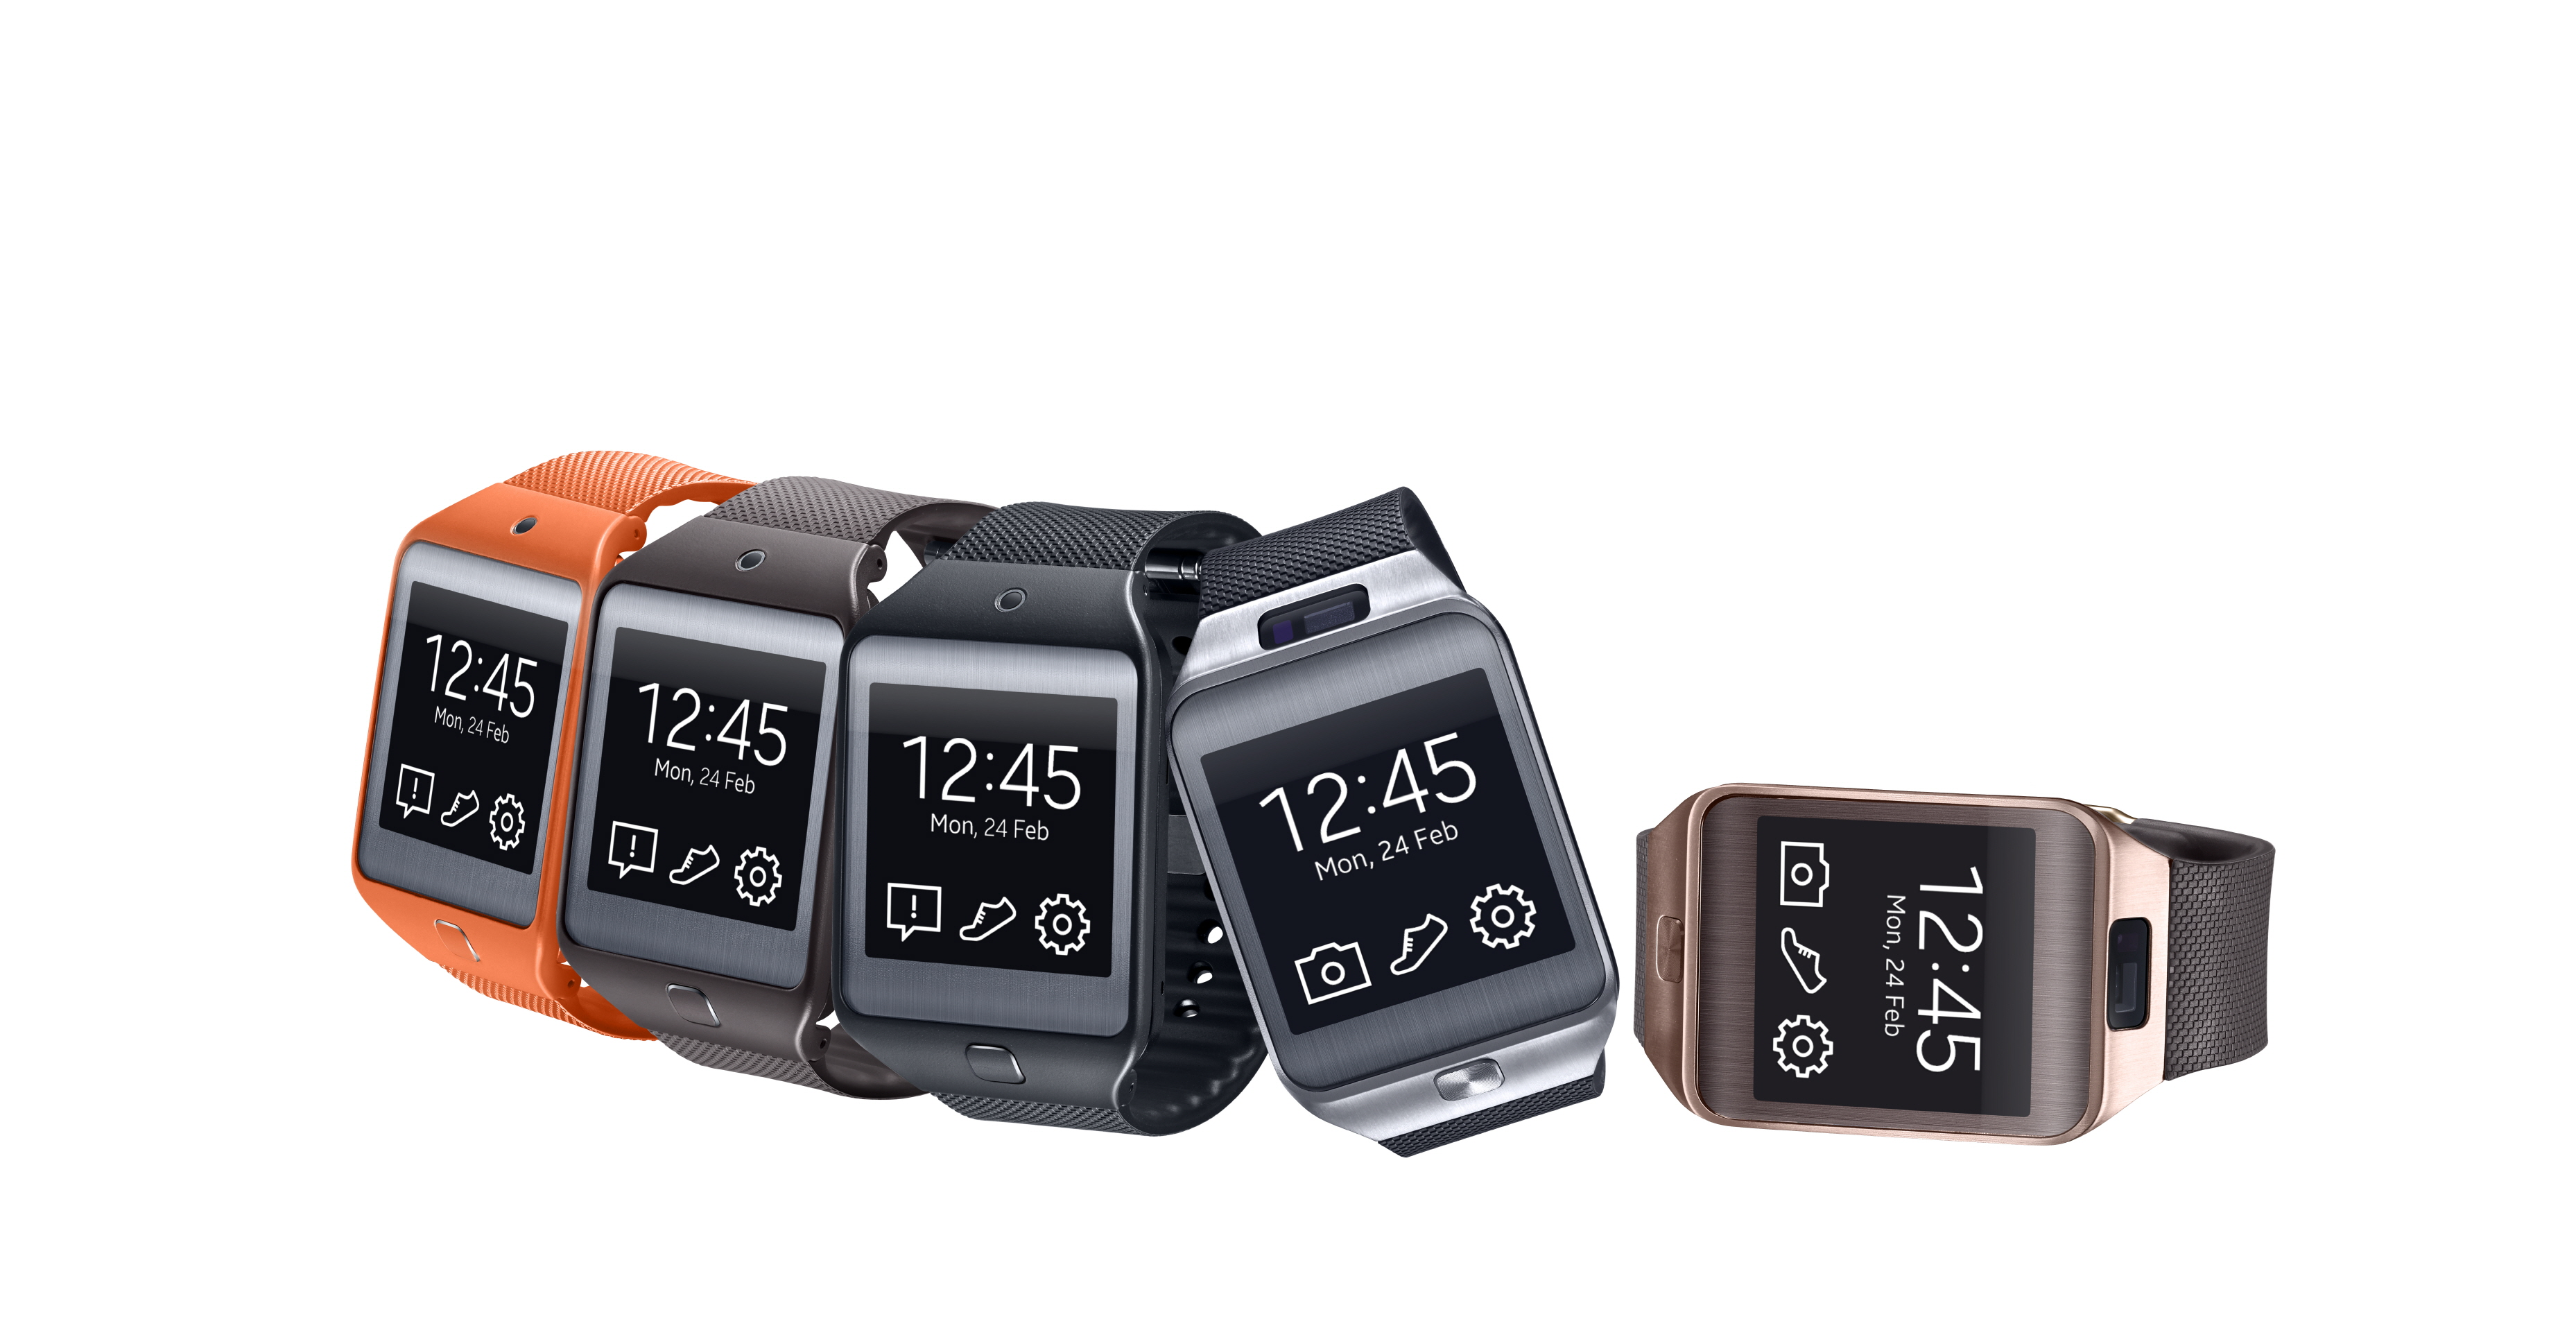 Gear 2 Neo (Three left-most devices) and Gear 2 (Two right-most devices)